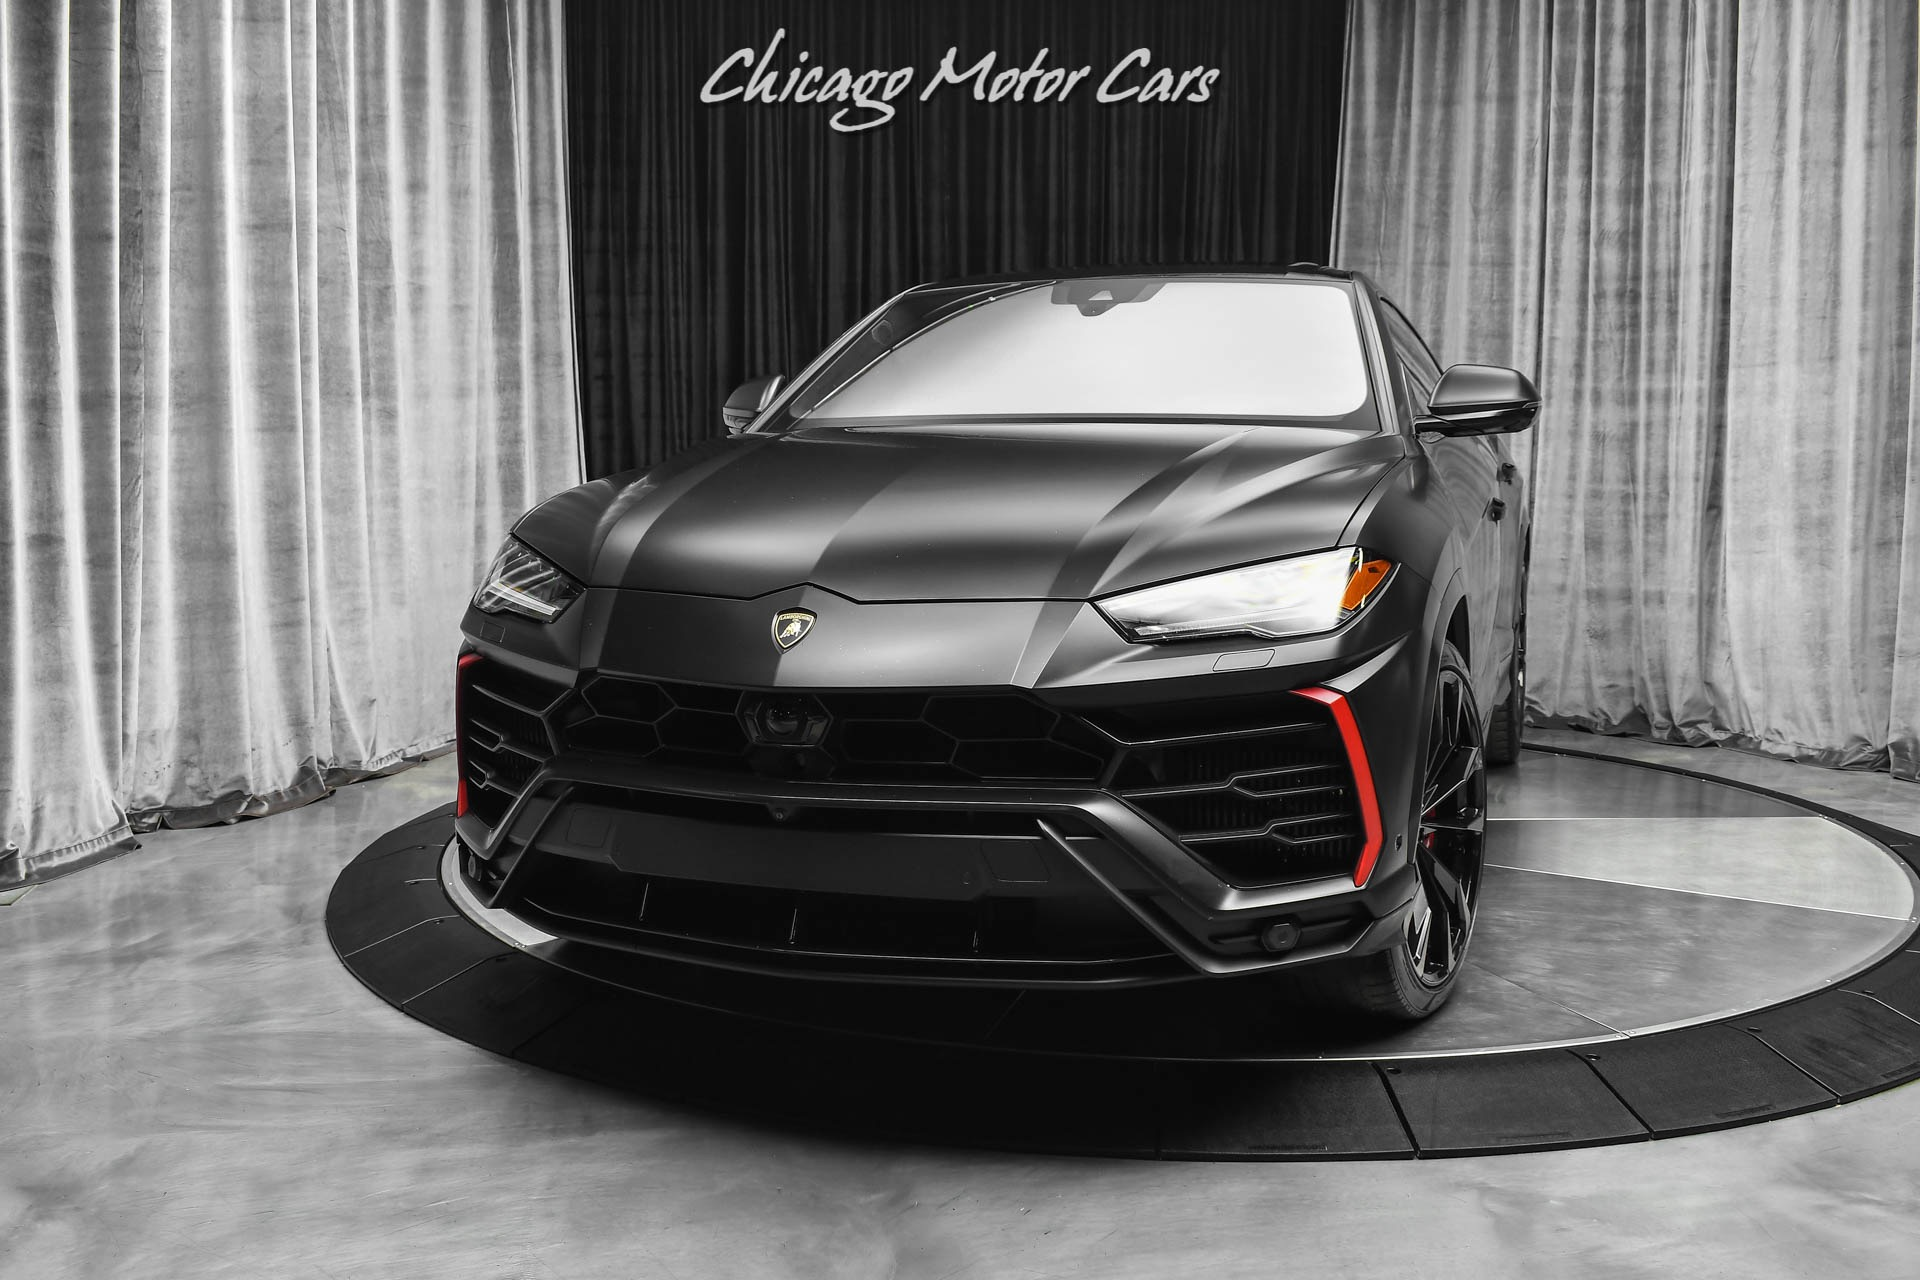 Used 2019 Lamborghini Urus Suv Msrp 243k Loaded W Options 23 Shiny Taigete Wheels For Sale Special Pricing Chicago Motor Cars Stock 17105